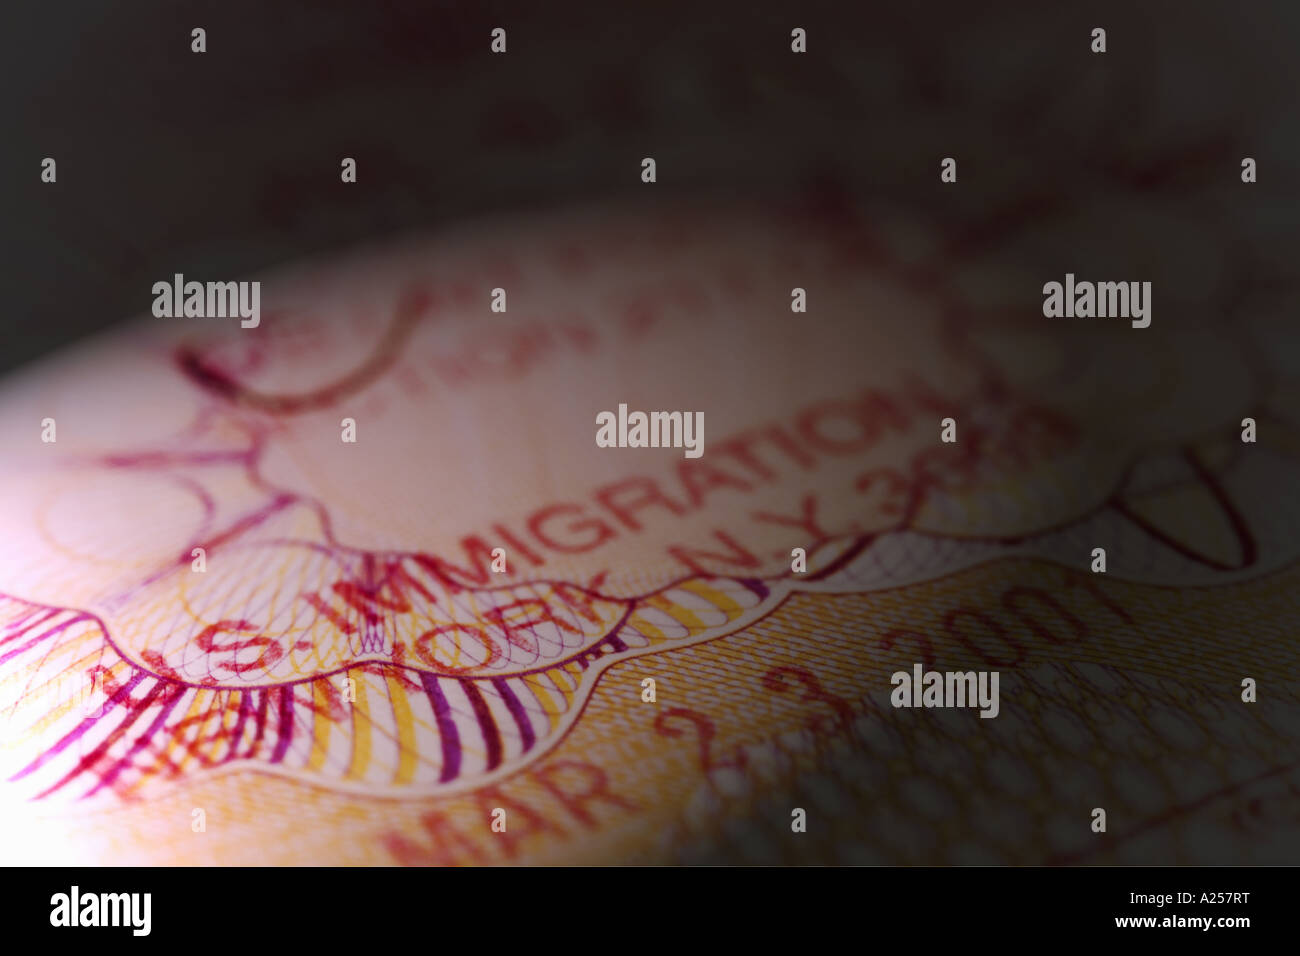 US immigration stamp in a British passport - Stock Image